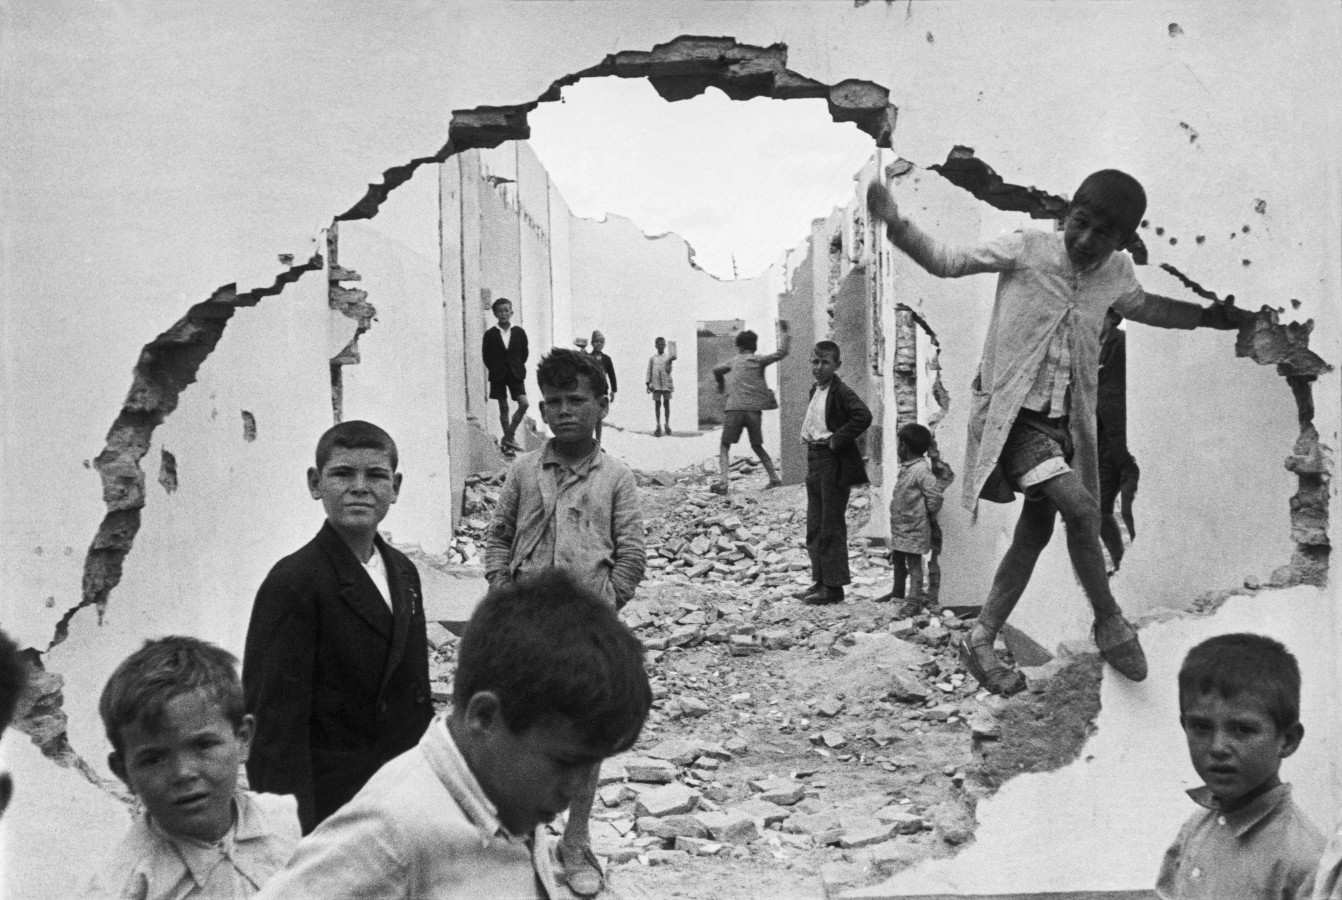 henri-cartier-bresson-hyeres-france-1932-seville-spain-1944-wall-hole-children-playing.jpg